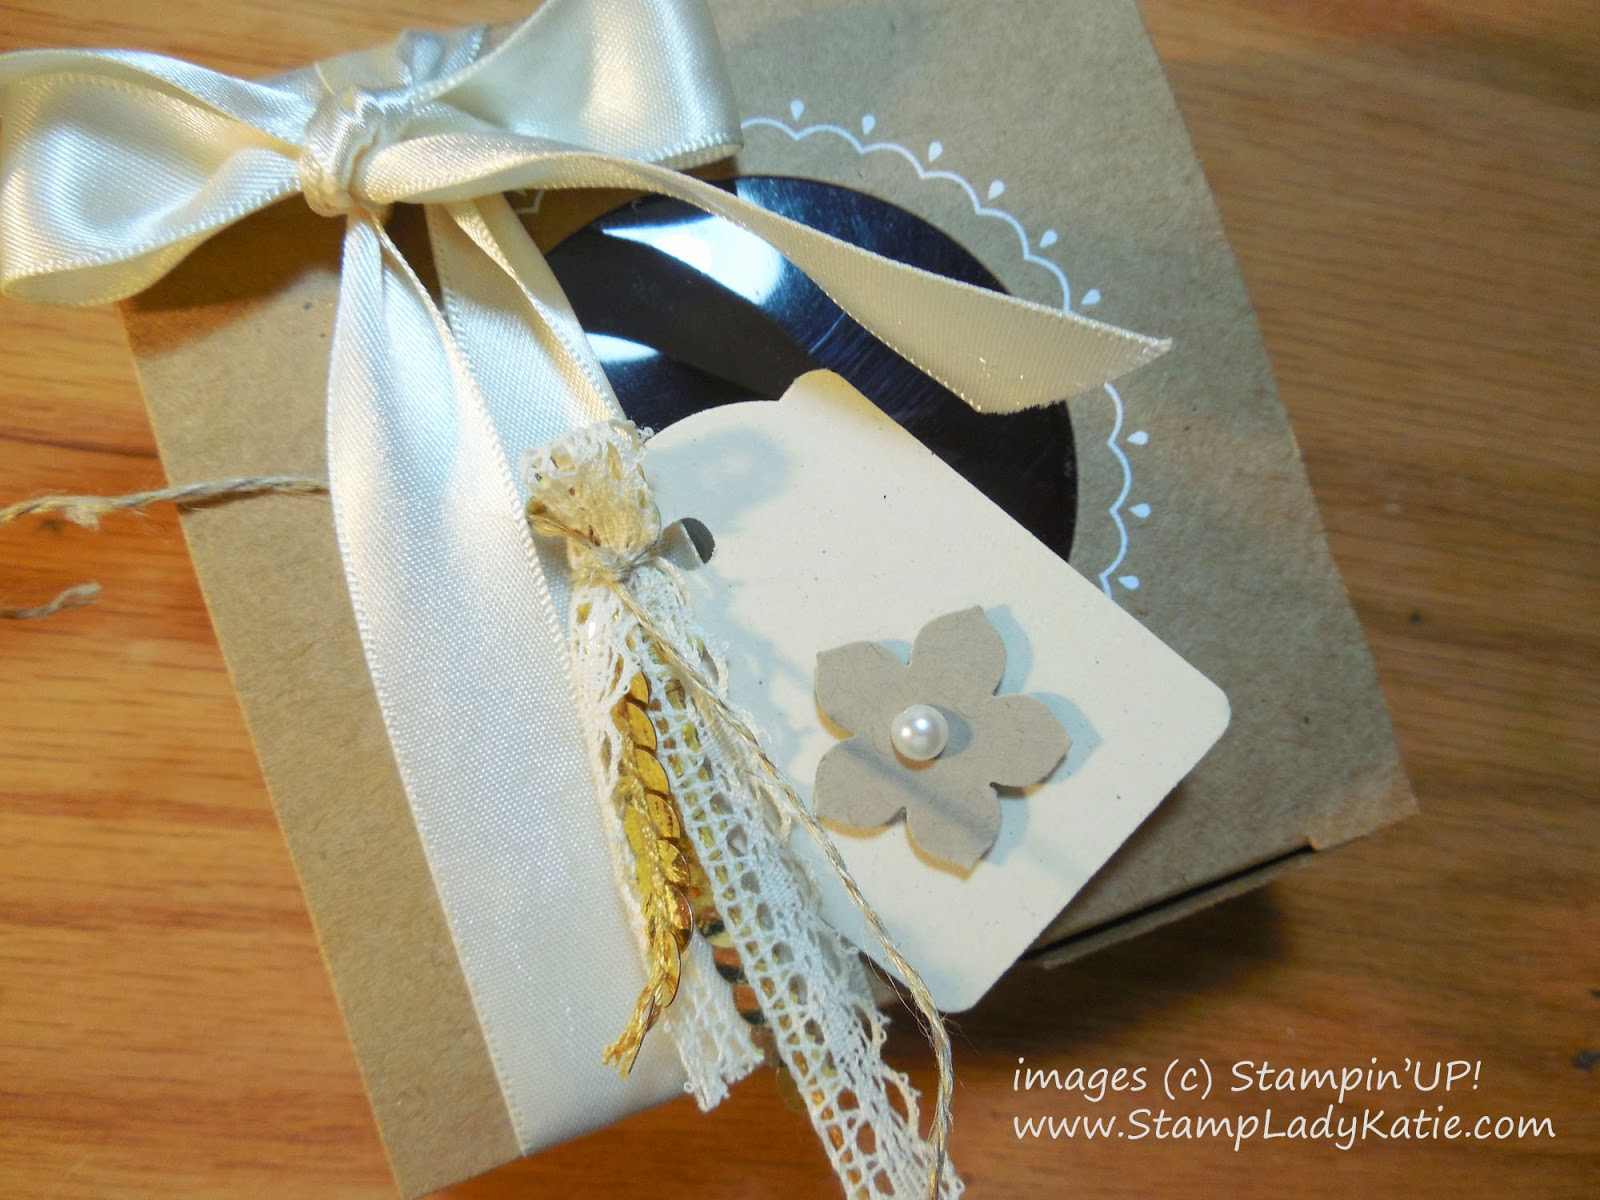 Tag for the Decorative Window Gift Box